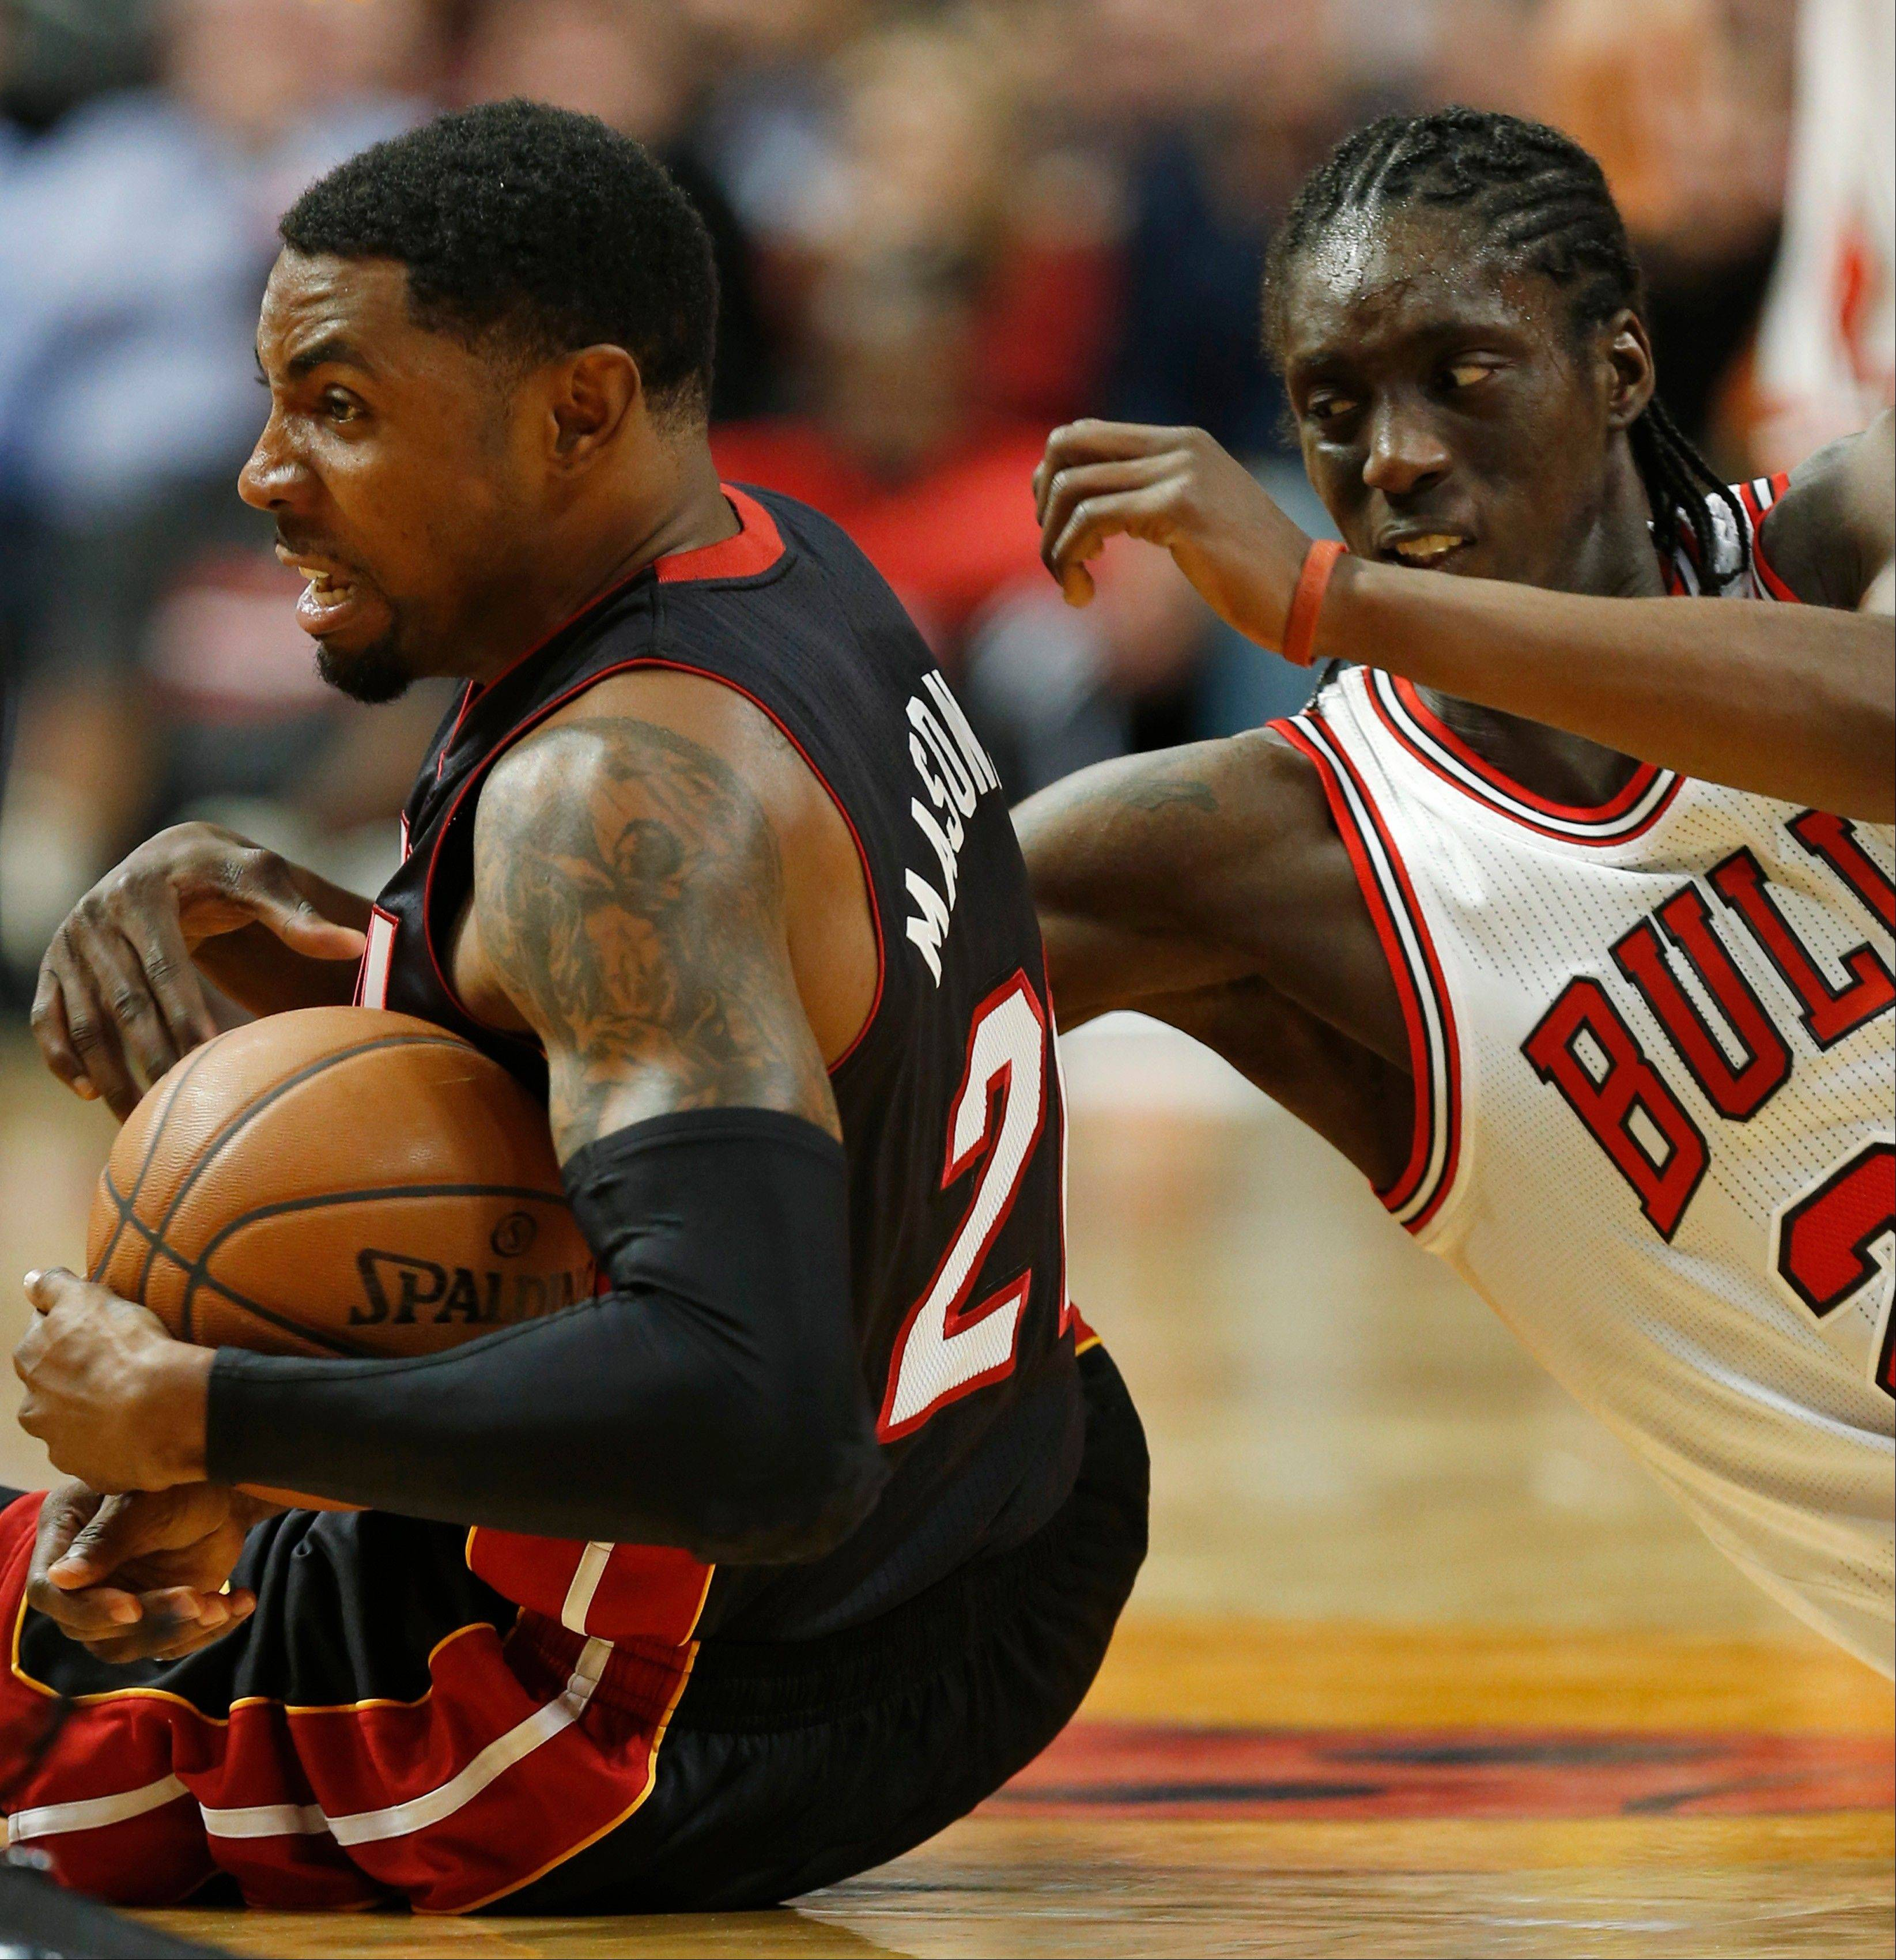 Tony Snell of the Bulls was much more comfortable Thursday playing against the Heat than he was in Miami on opening night.